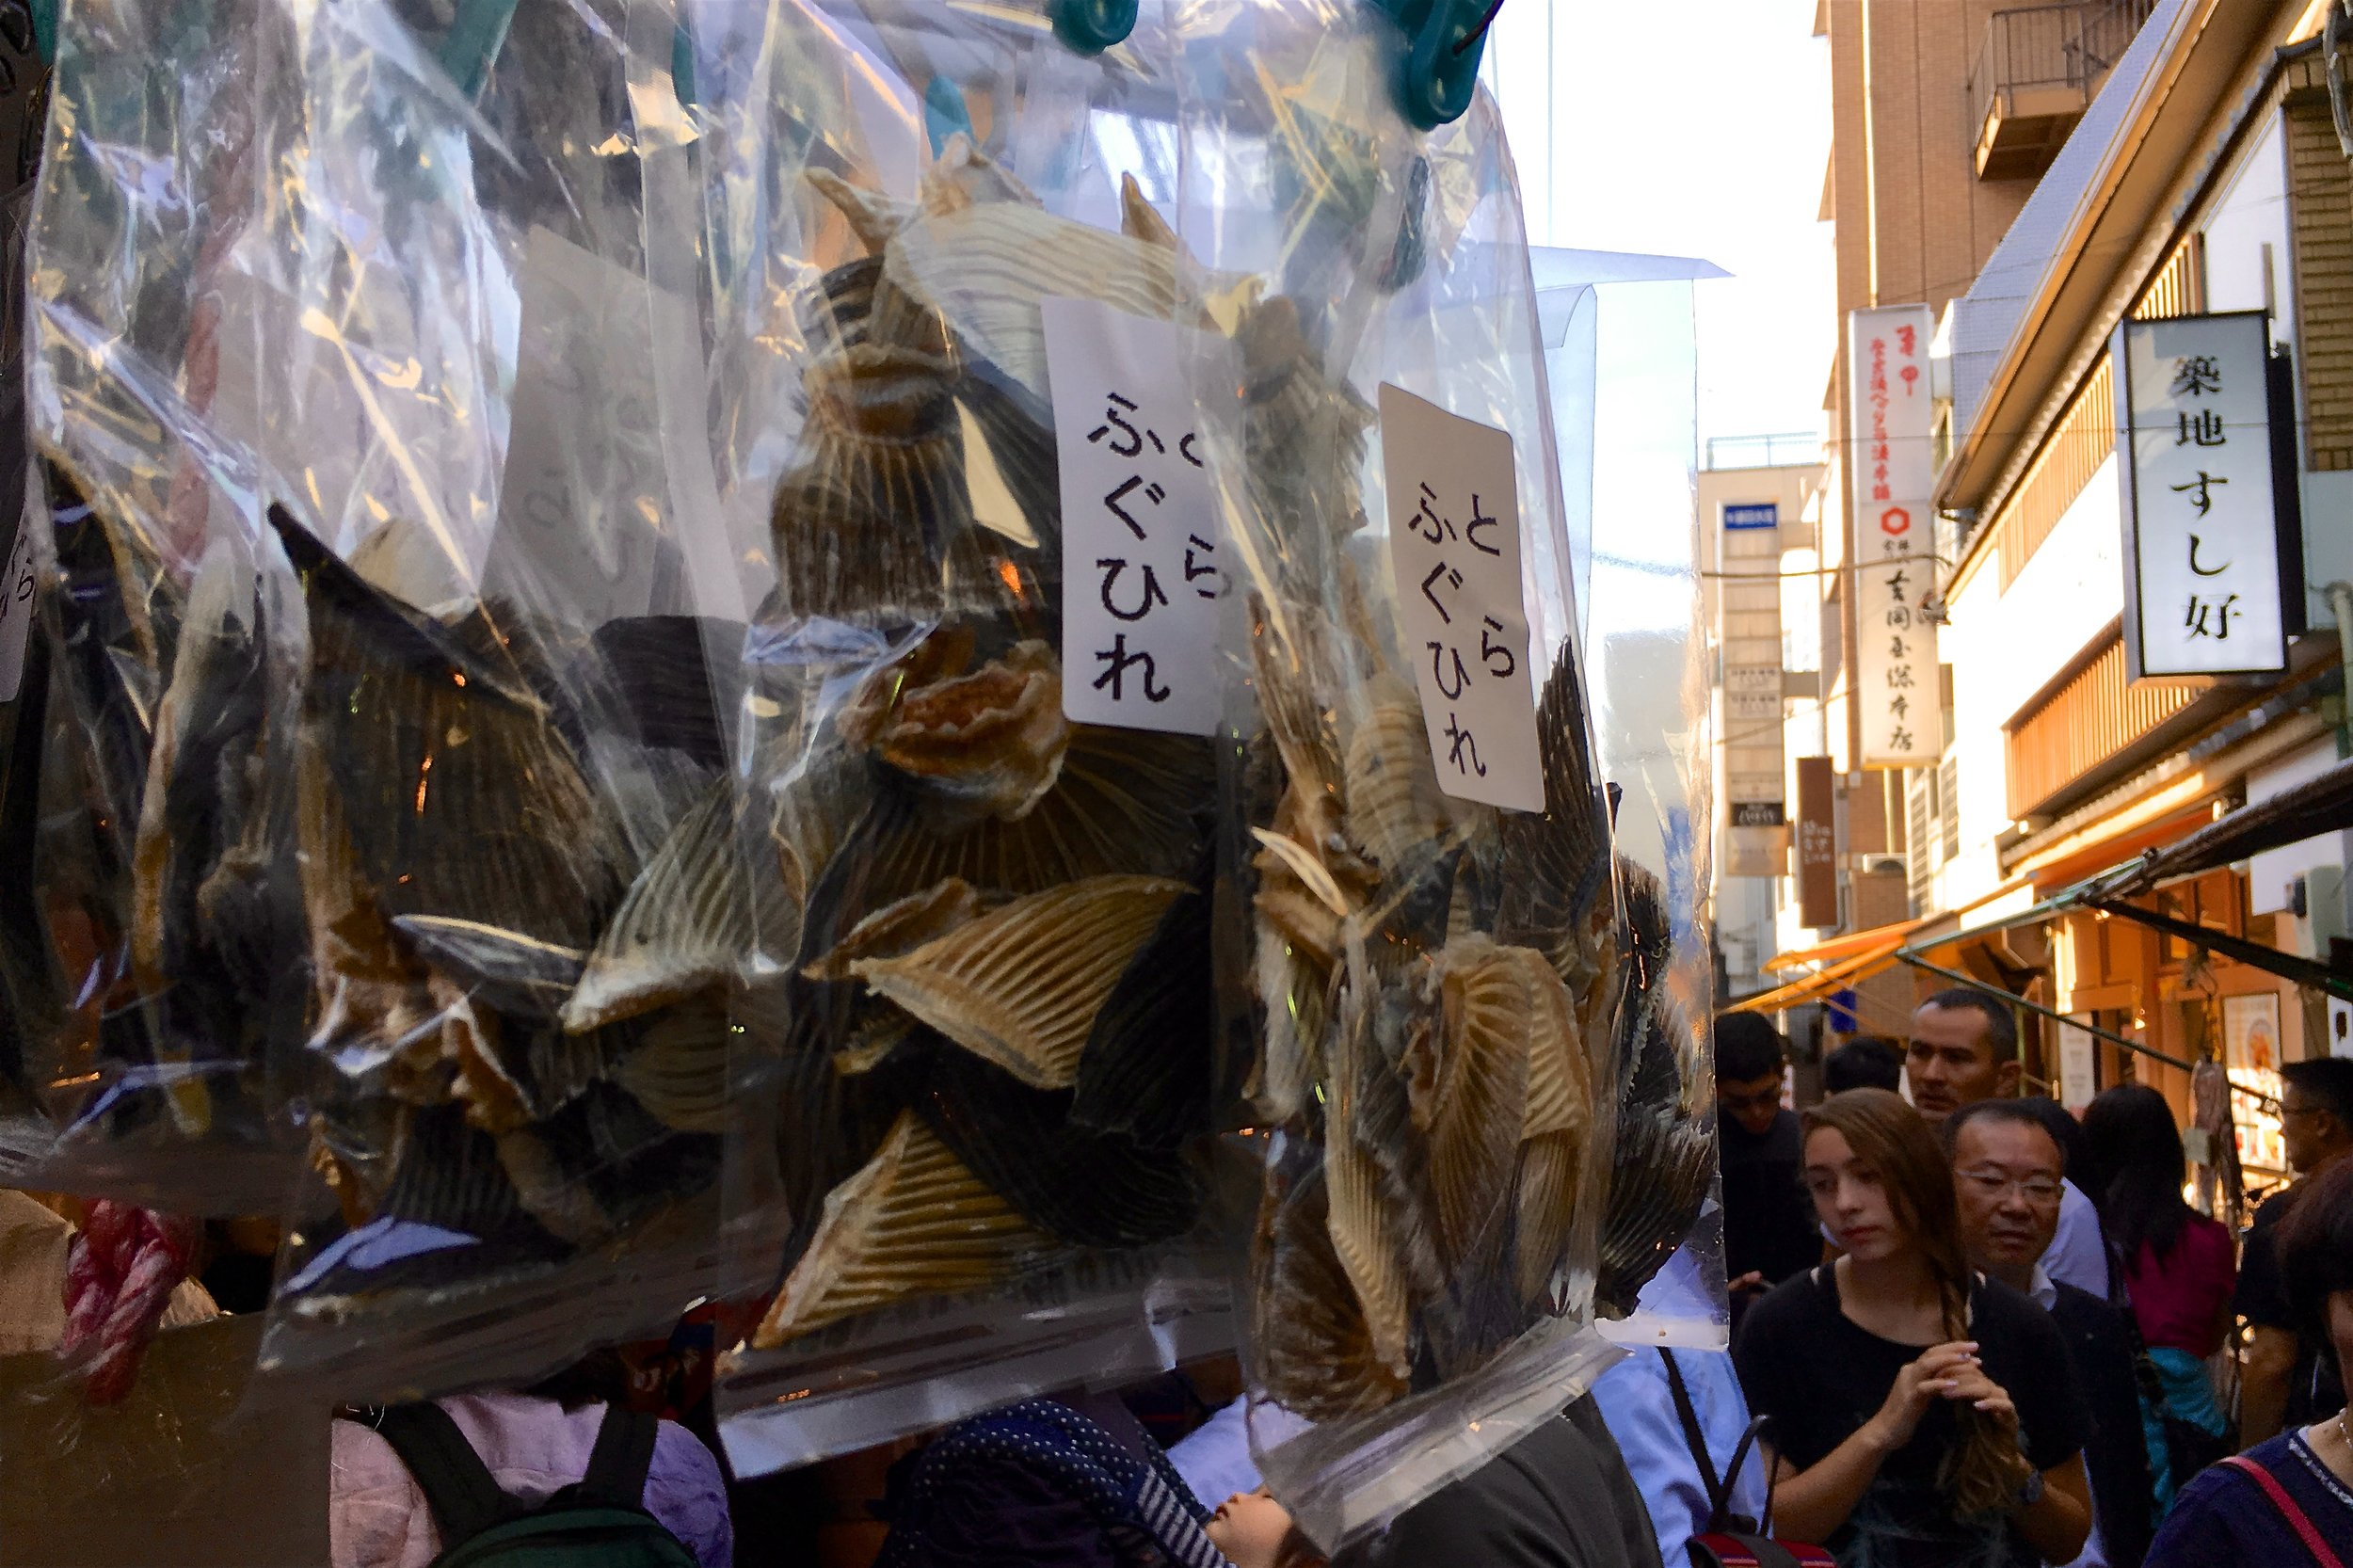 Dried fish fins and tails